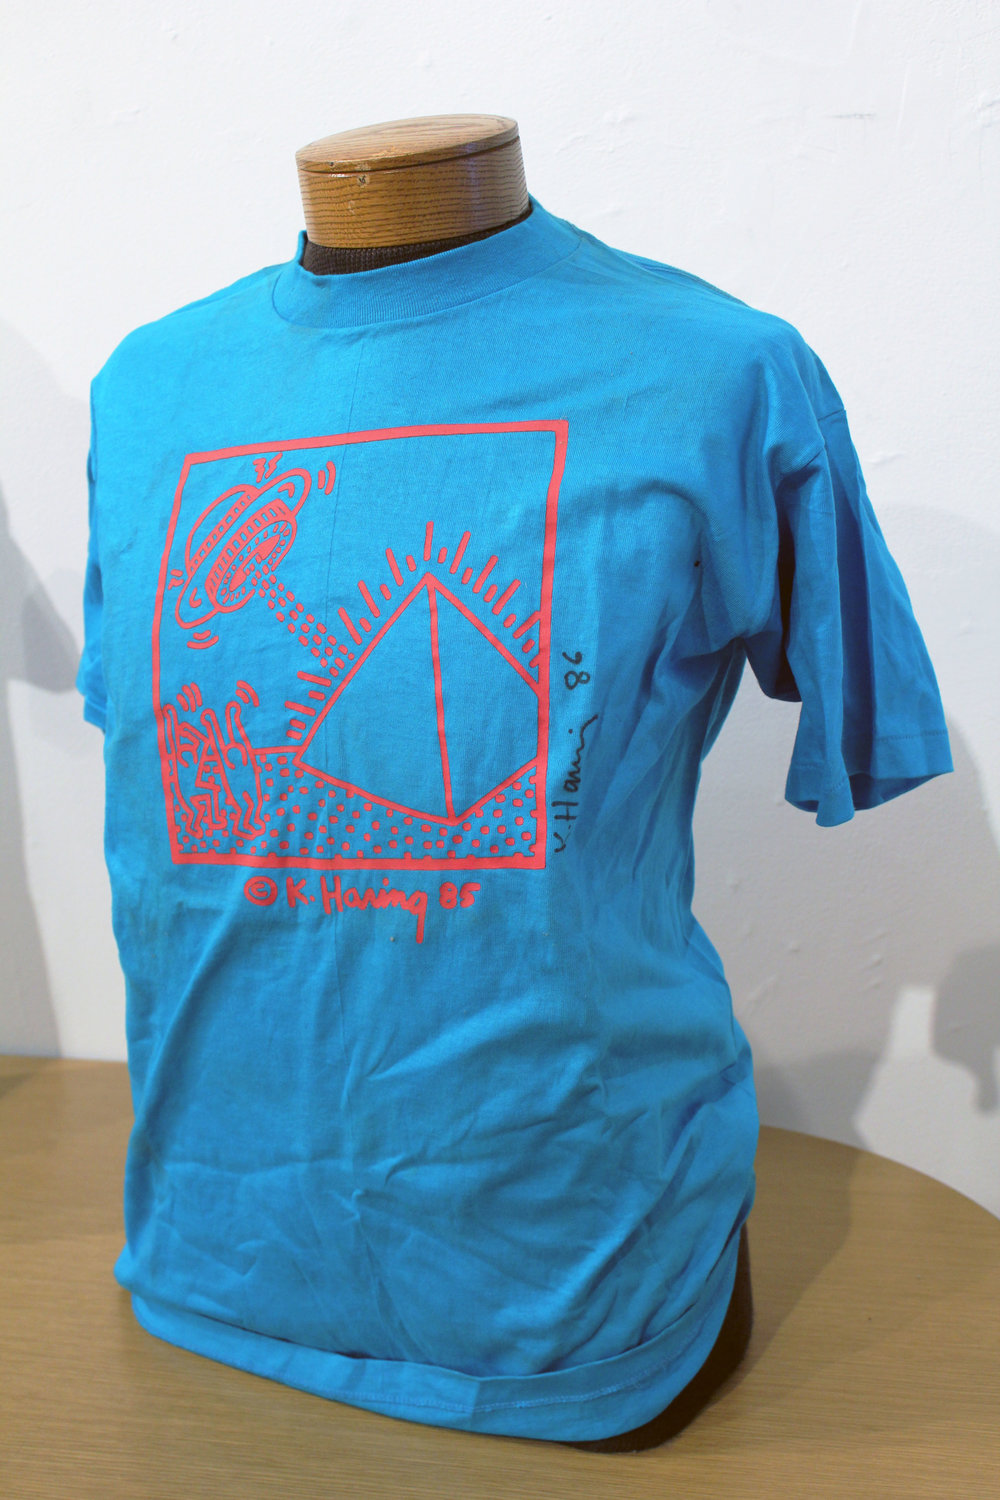 After Keith Haring  Untitled (Shirt Blue), 1985/86 Cotton t-shirt with signature by Keith Haring Signed and dated in ink on recto Size XL Condition: surface dust Estimate: $800/$1,200